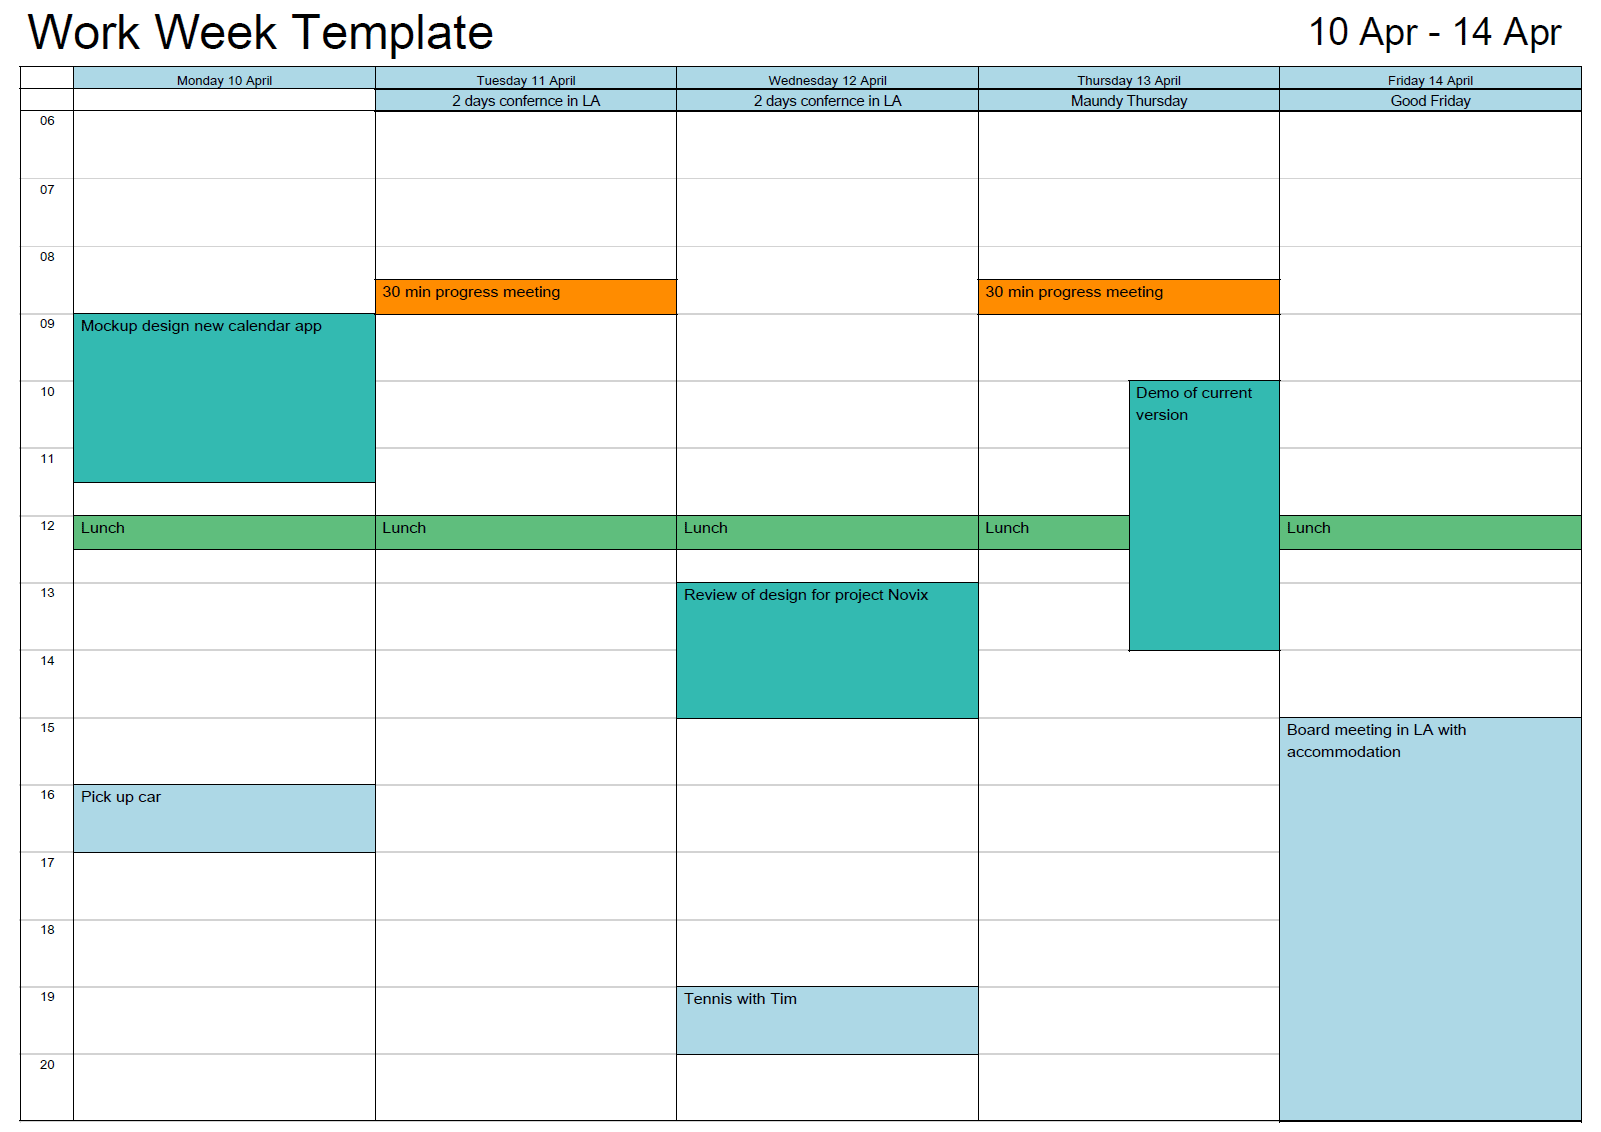 outlook calendar printing assistant templates - outlook calendar print